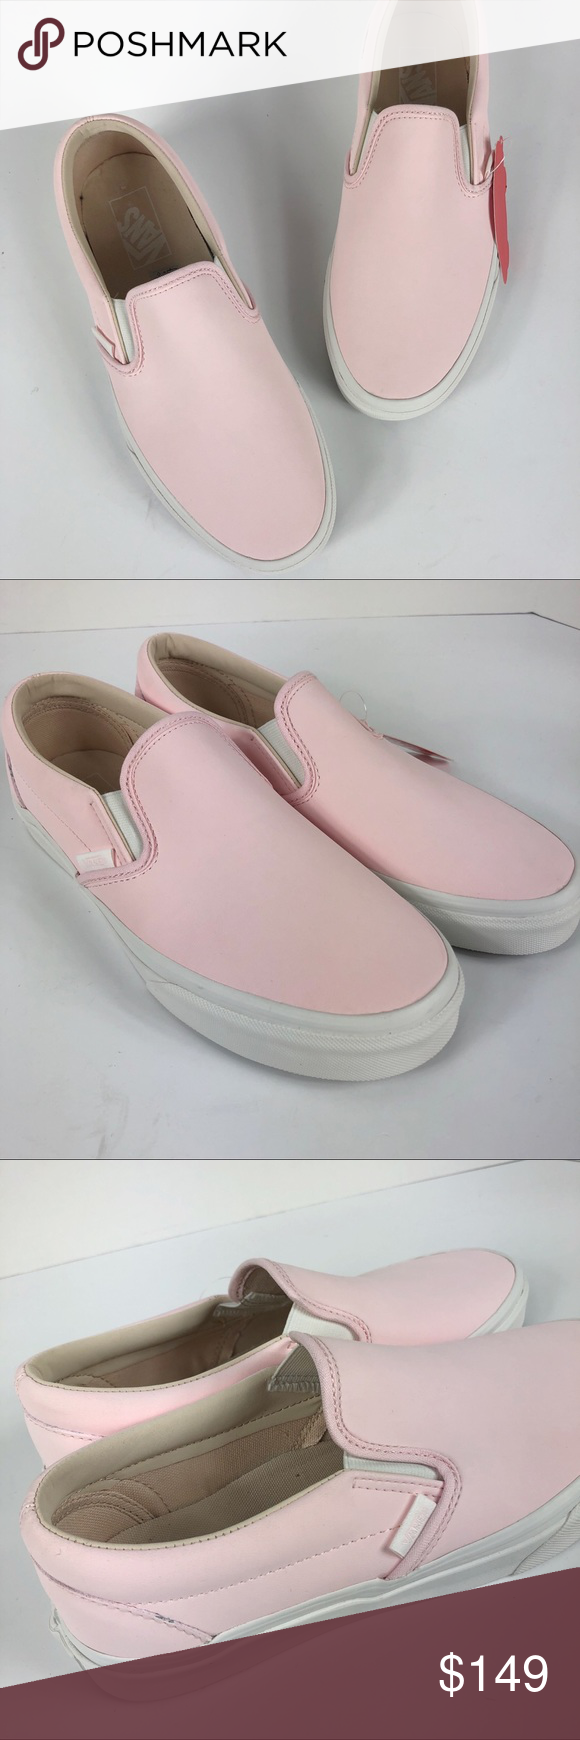 67bfc2090f6 Rare Vans slip on shoes heavenly pink leather 9 Brand new in box Vans  classic slip on in heavenly pink leather. Men s size 7.5  woman s 9 Vans  Shoes ...